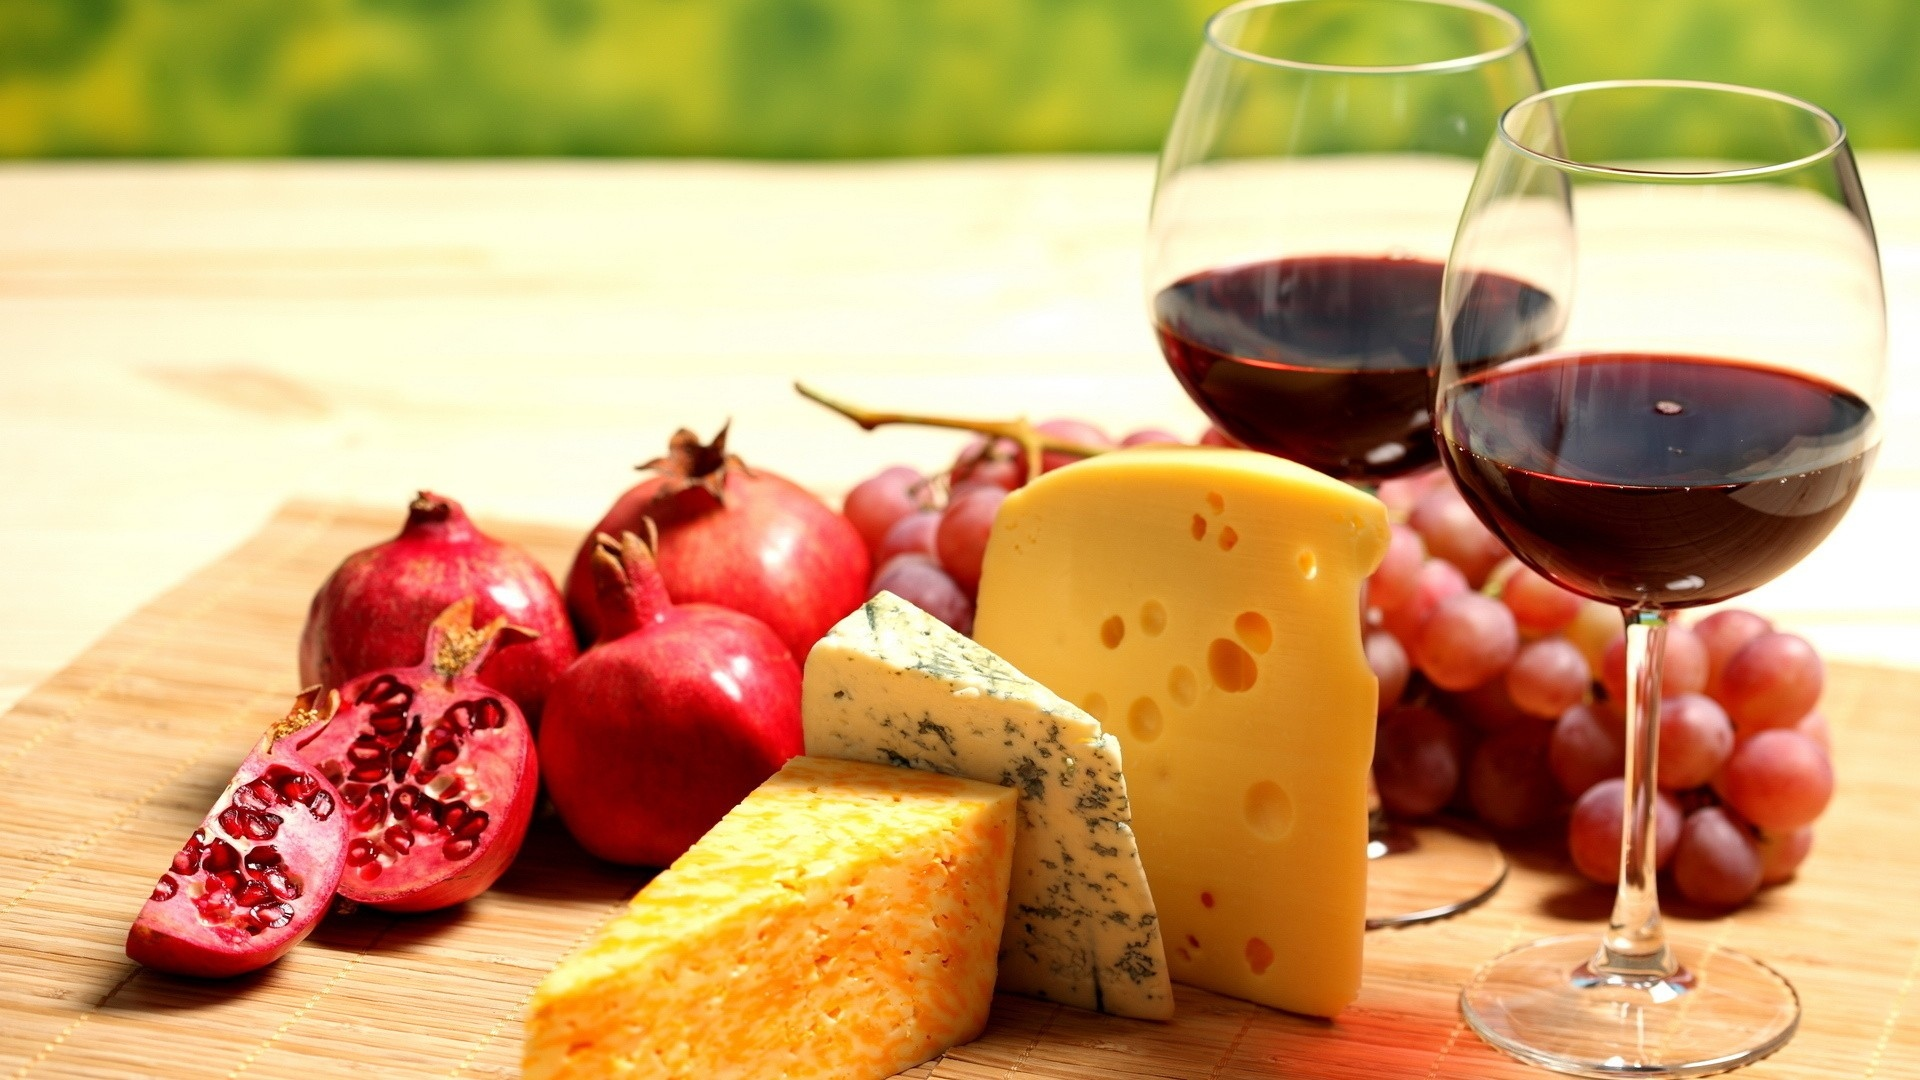 Free Download Wine And Cheese Wine And Cheese Wallpaper Hd